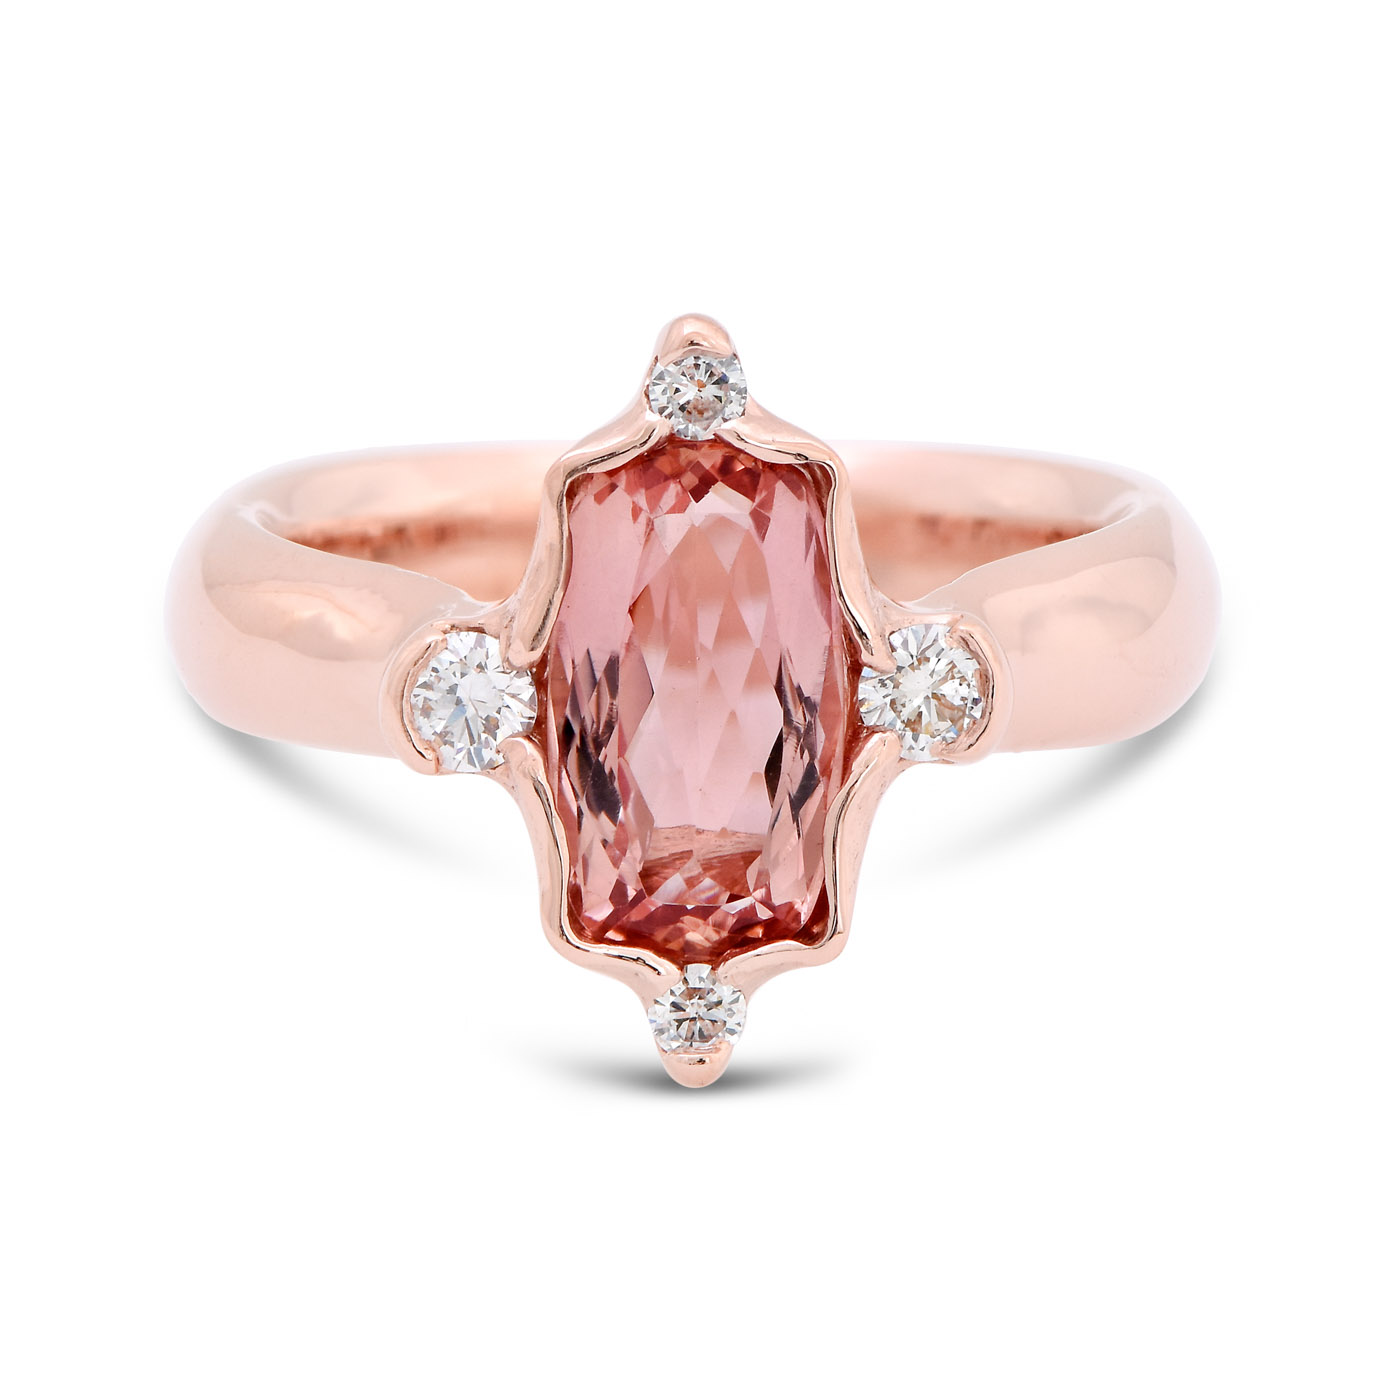 Imperial Topaz Rose Gold Ring - deJonghe Original Jewelry